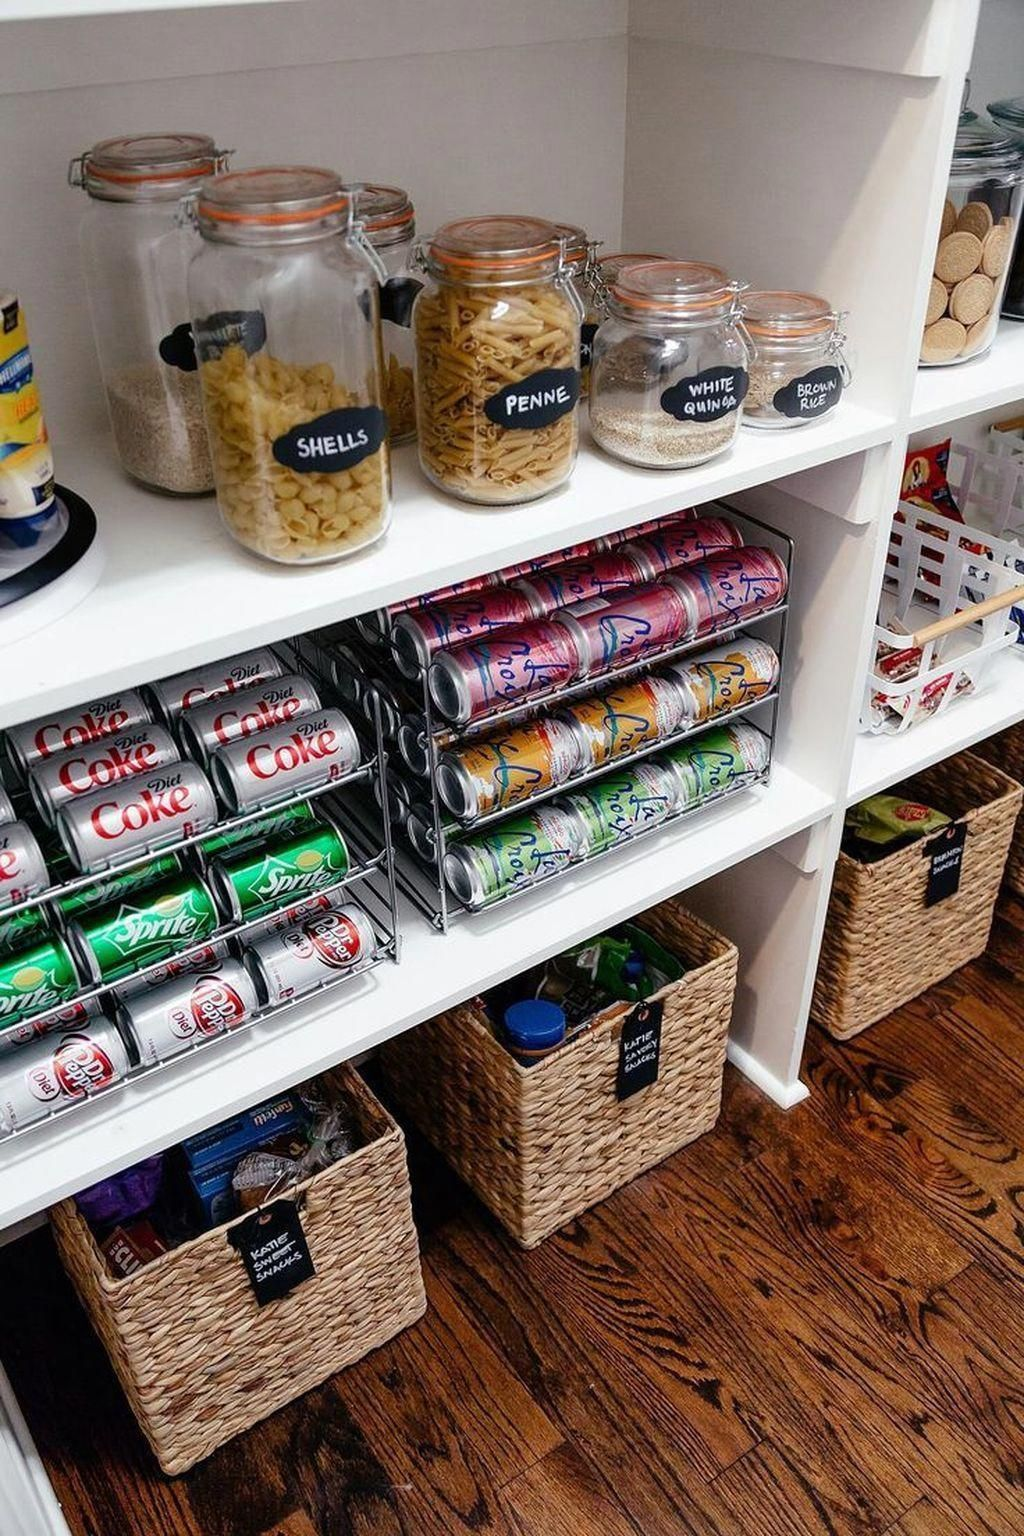 cool 49 nice pantry organization ideas kitchenpantryideas in 2020 diy pantry organization on kitchen organization small apartment id=37609